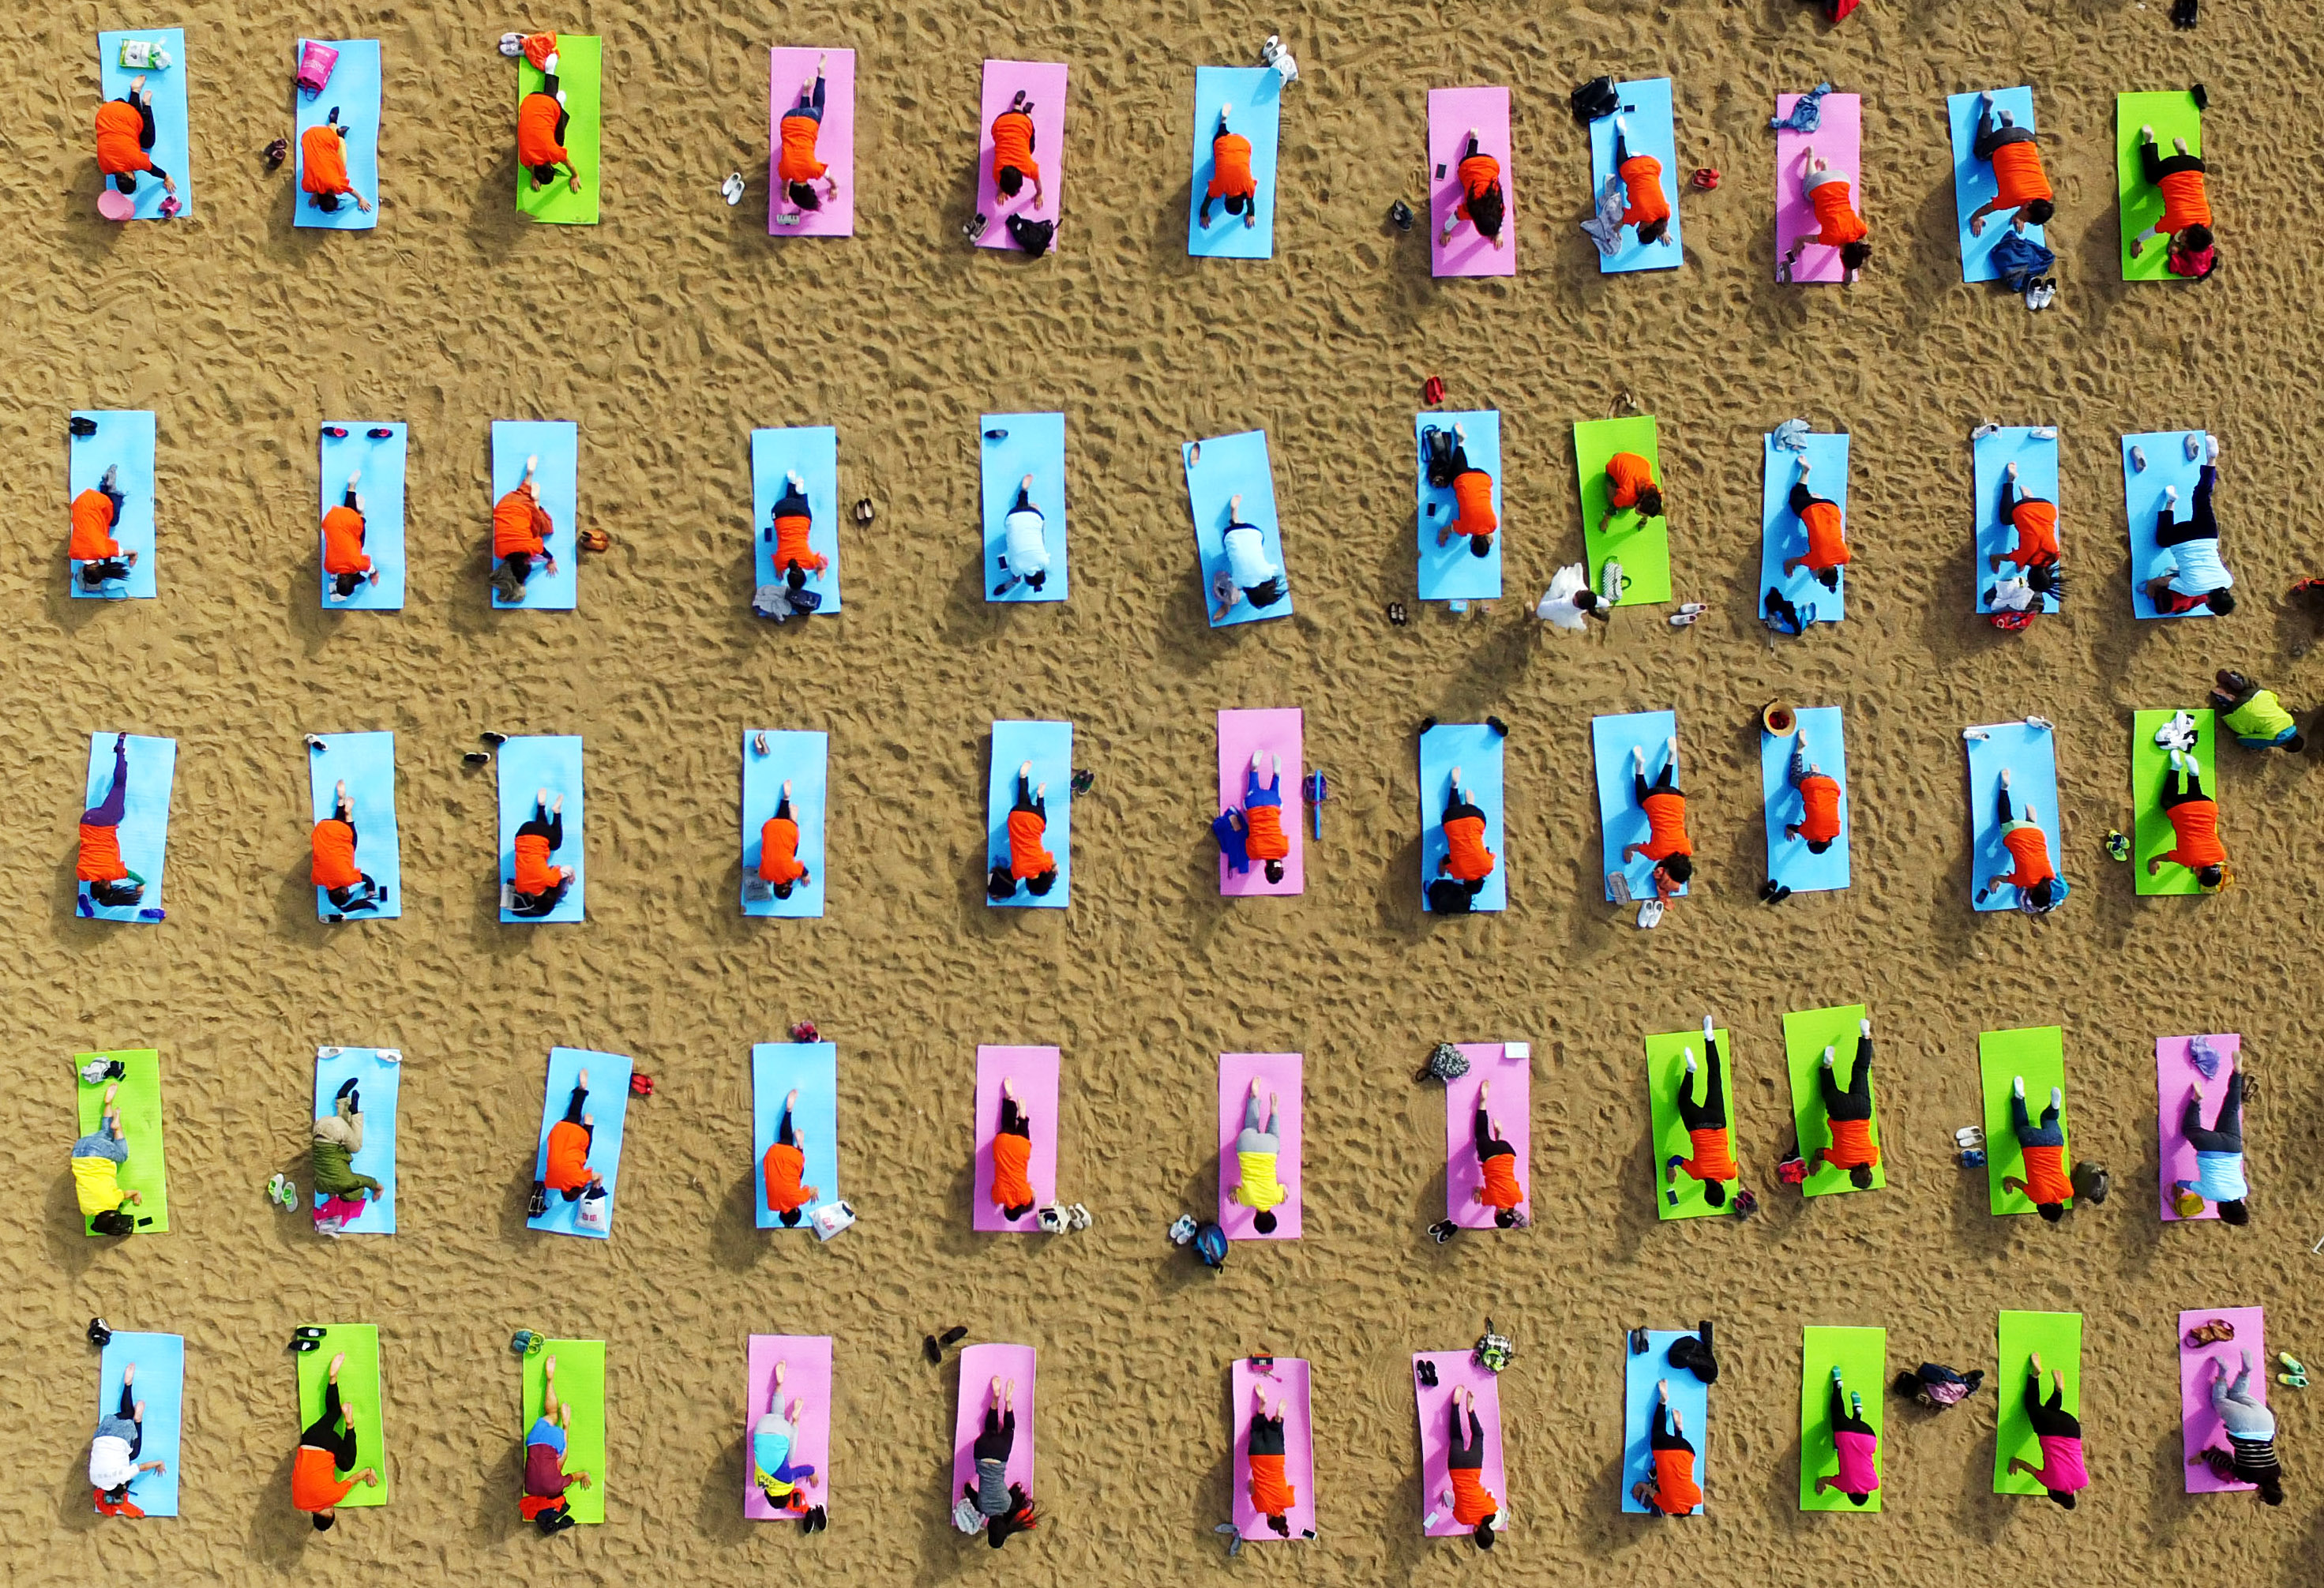 Slide 2 of 39: RIZHAO, CHINA - OCTOBER 06: Aerial view of many people practicing yoga on the beach of Wanpingkou Scenic Spot on October 6, 2016 in Rizhao, Shandong Province of China. Wanpingkou Scenic Spot launched the Sand Beach Cultural Week featuring beach volleyball, beach soccer, sand sculpture and yoga activity during the National Day Holiday. About 300 citizens and tourists signed up for the experience activity of yoga at Wanpingkou Scenic Spot. (Photo by VCG/VCG via Getty Images)